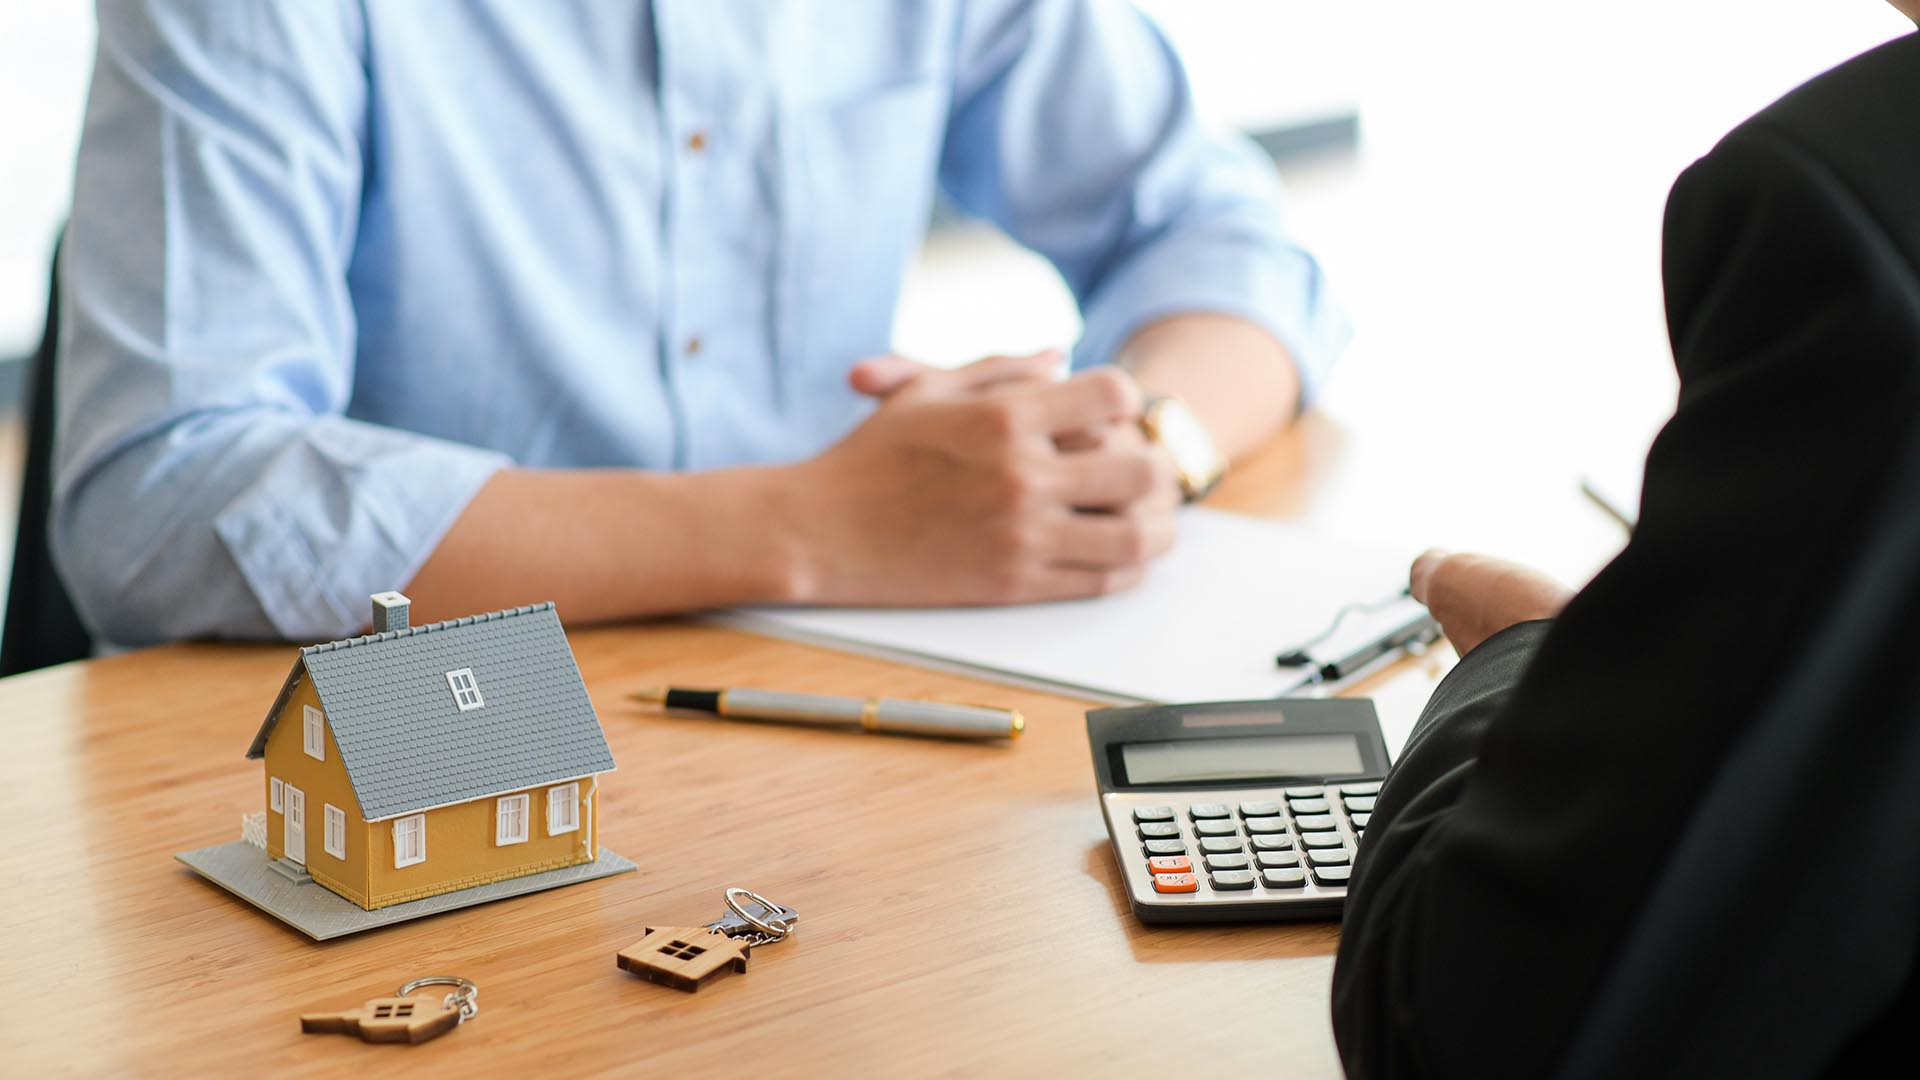 How Do I Become a Personal Loan Broker?